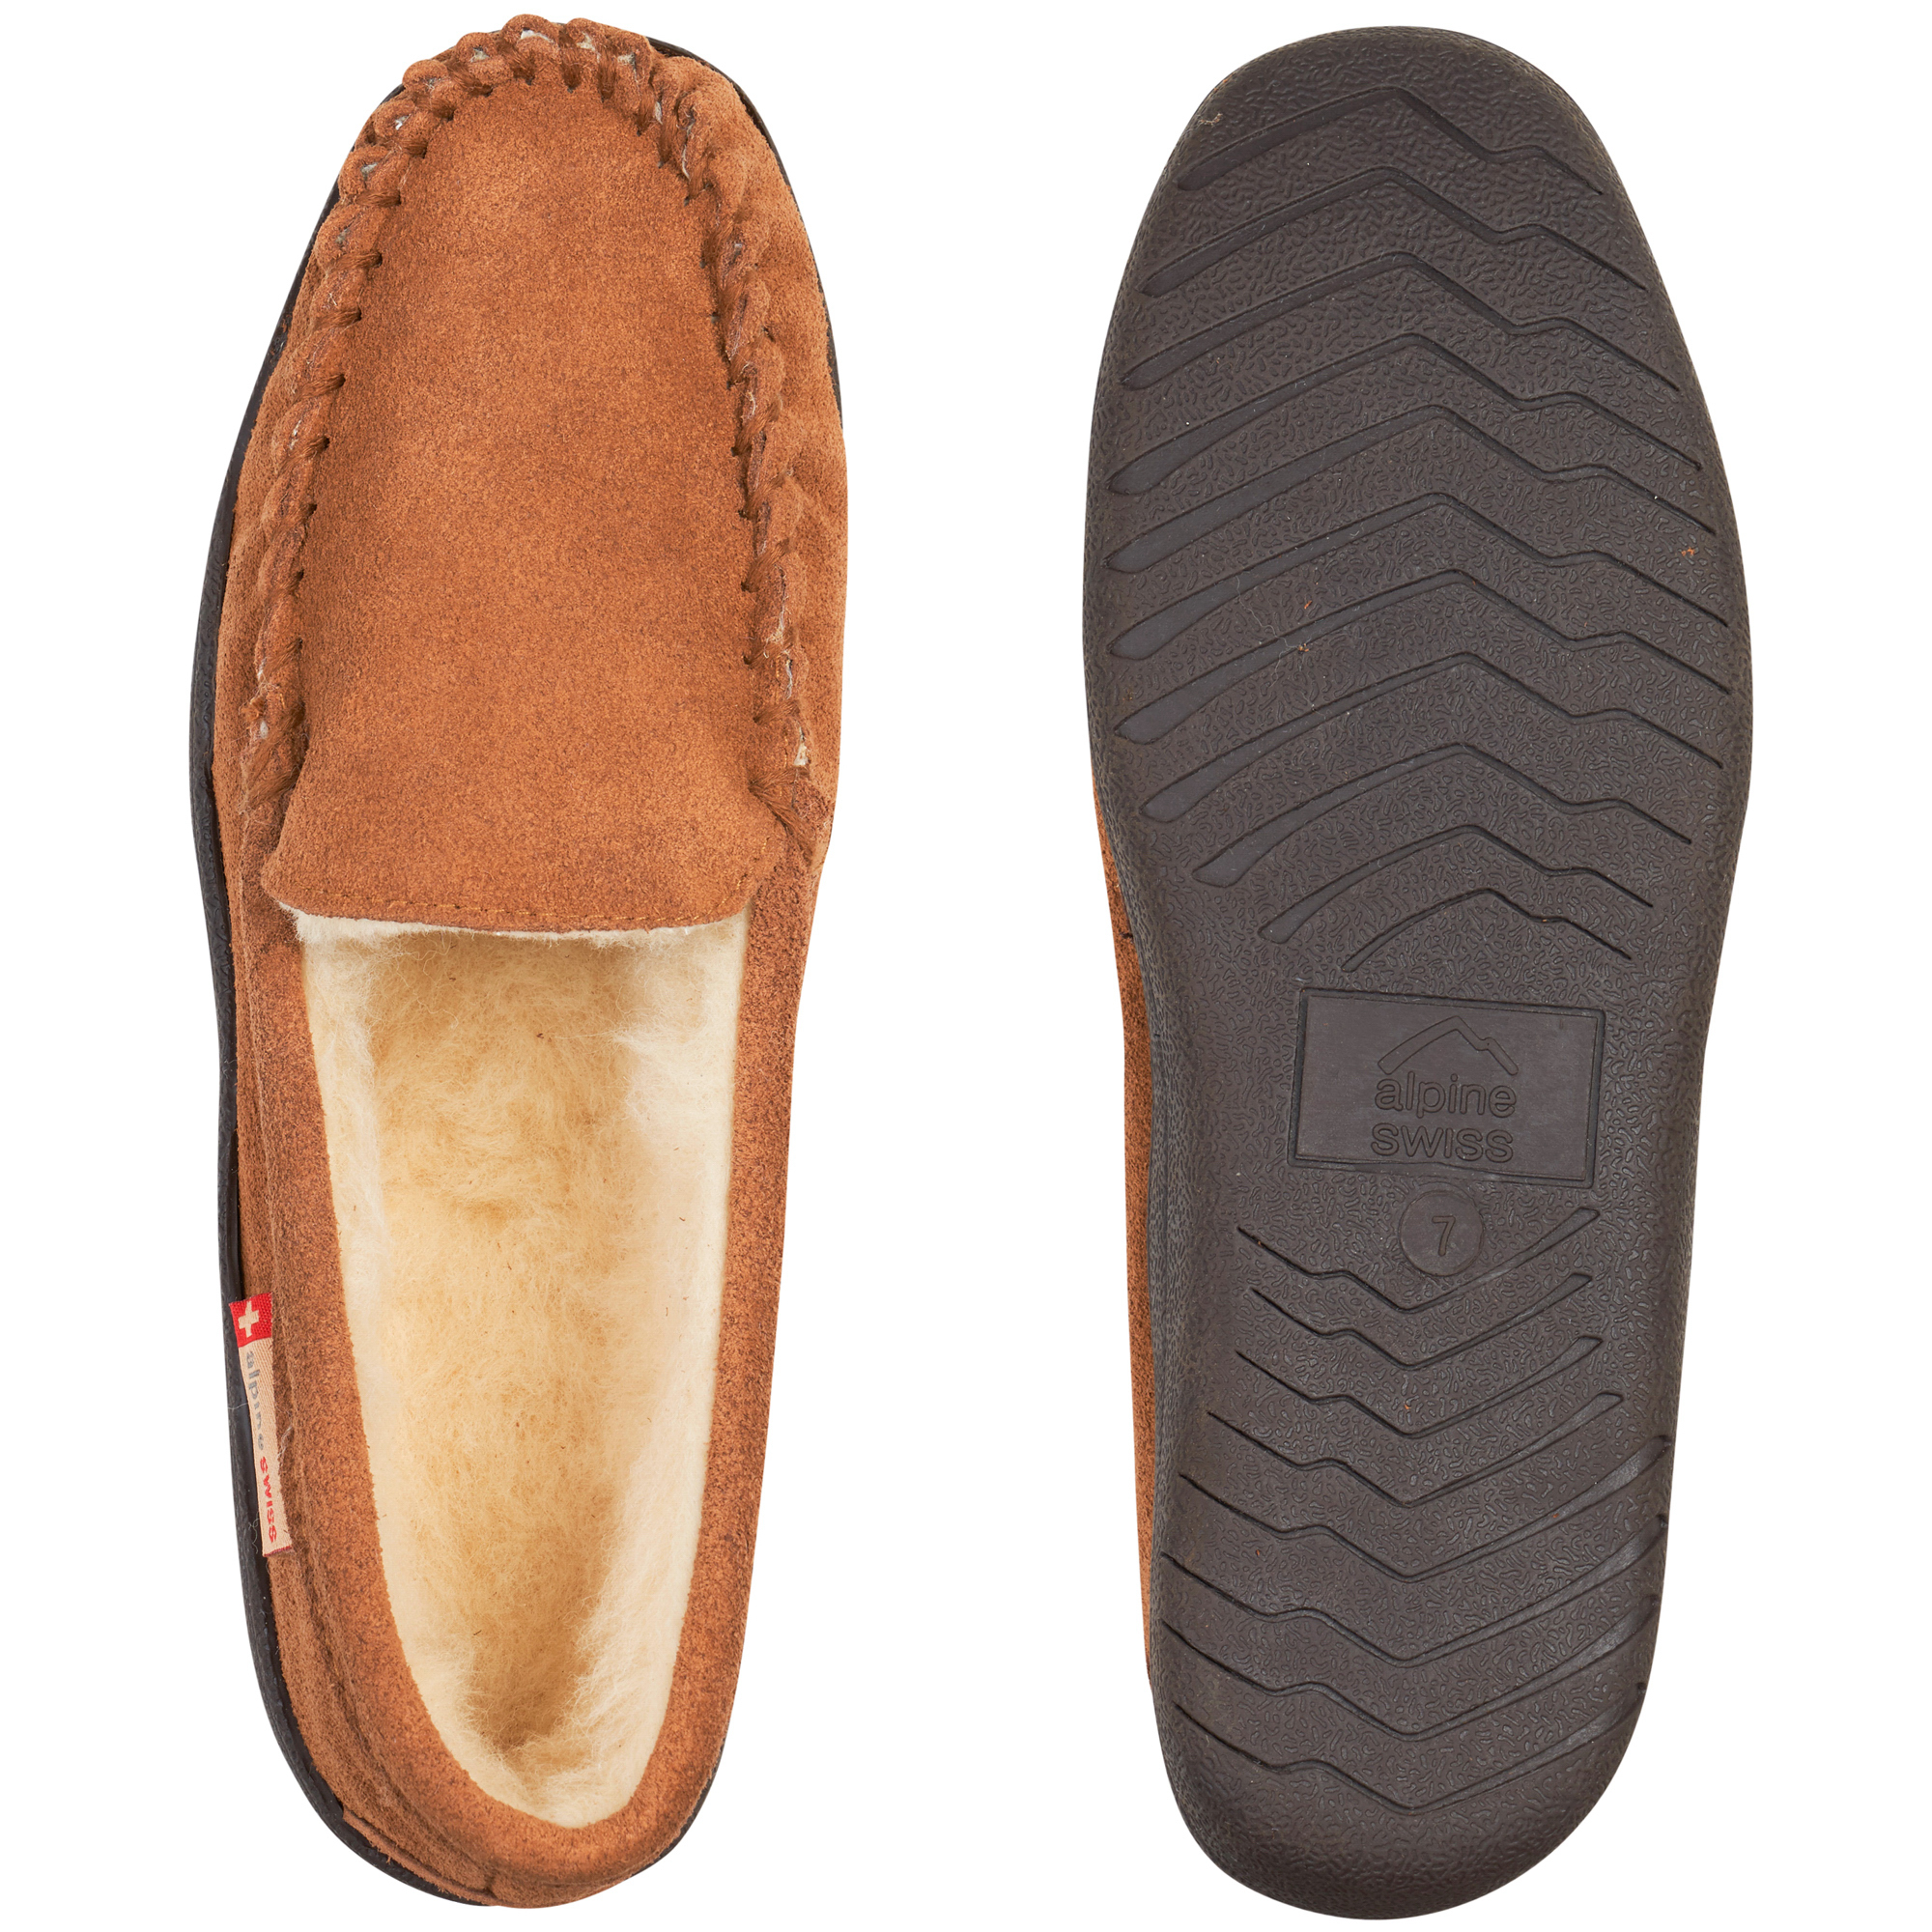 Alpine-Swiss-Yukon-Mens-Suede-Shearling-Moccasin-Slippers-Moc-Toe-Slip-On-Shoes thumbnail 22